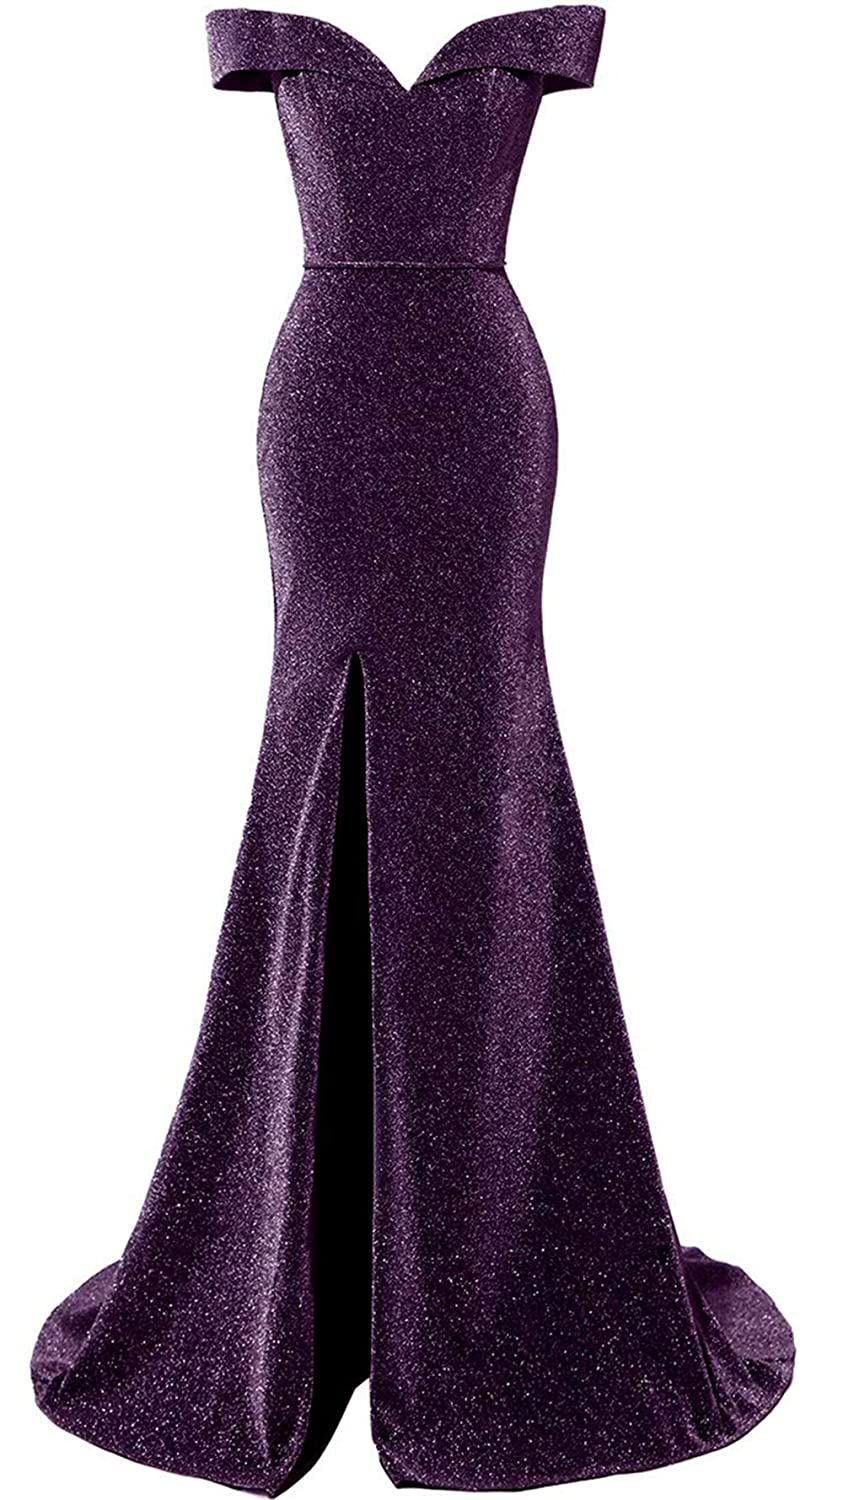 Grape AnnaBride Women's Long Off Shoulder Formal Evening Dress Glitter Prom Party Gowns 23PM